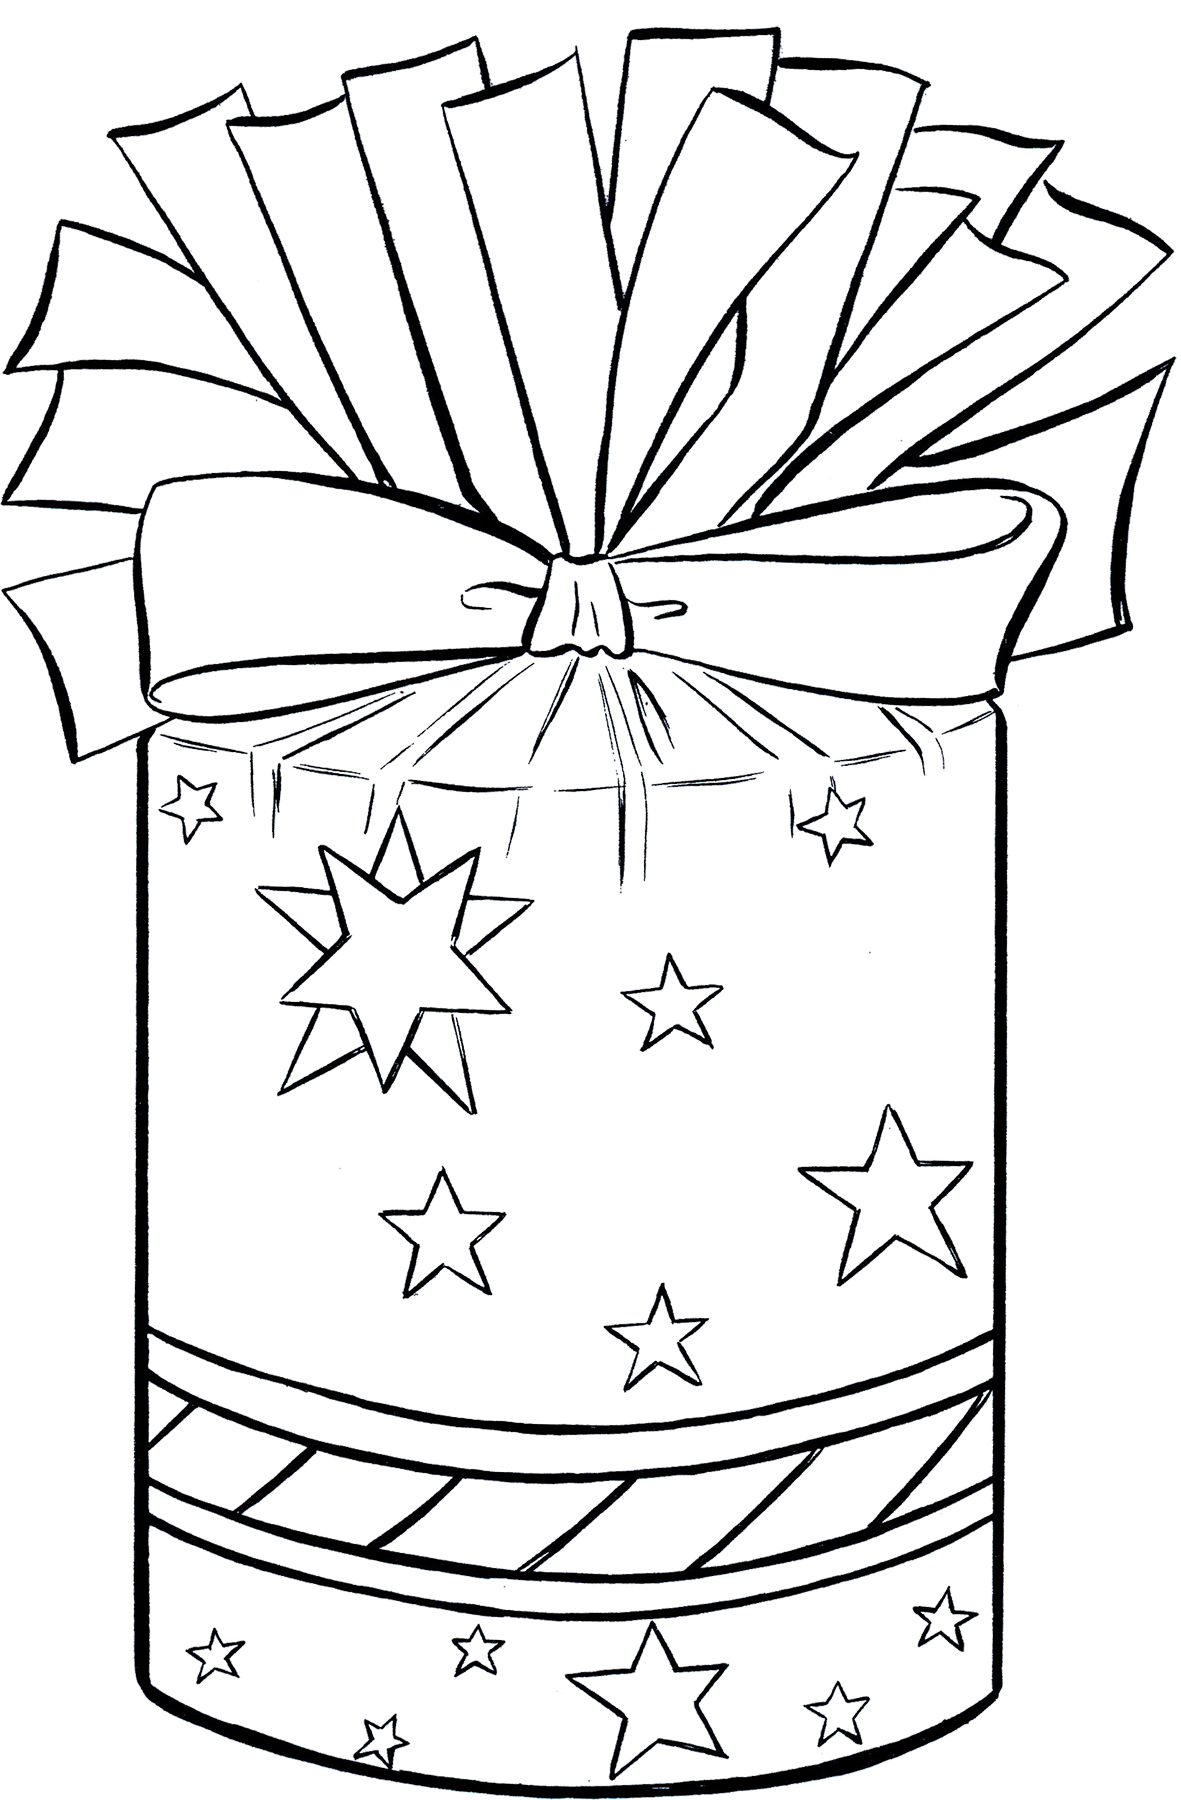 Christmas Present Clip Art - Fun! - The Graphics Fairy